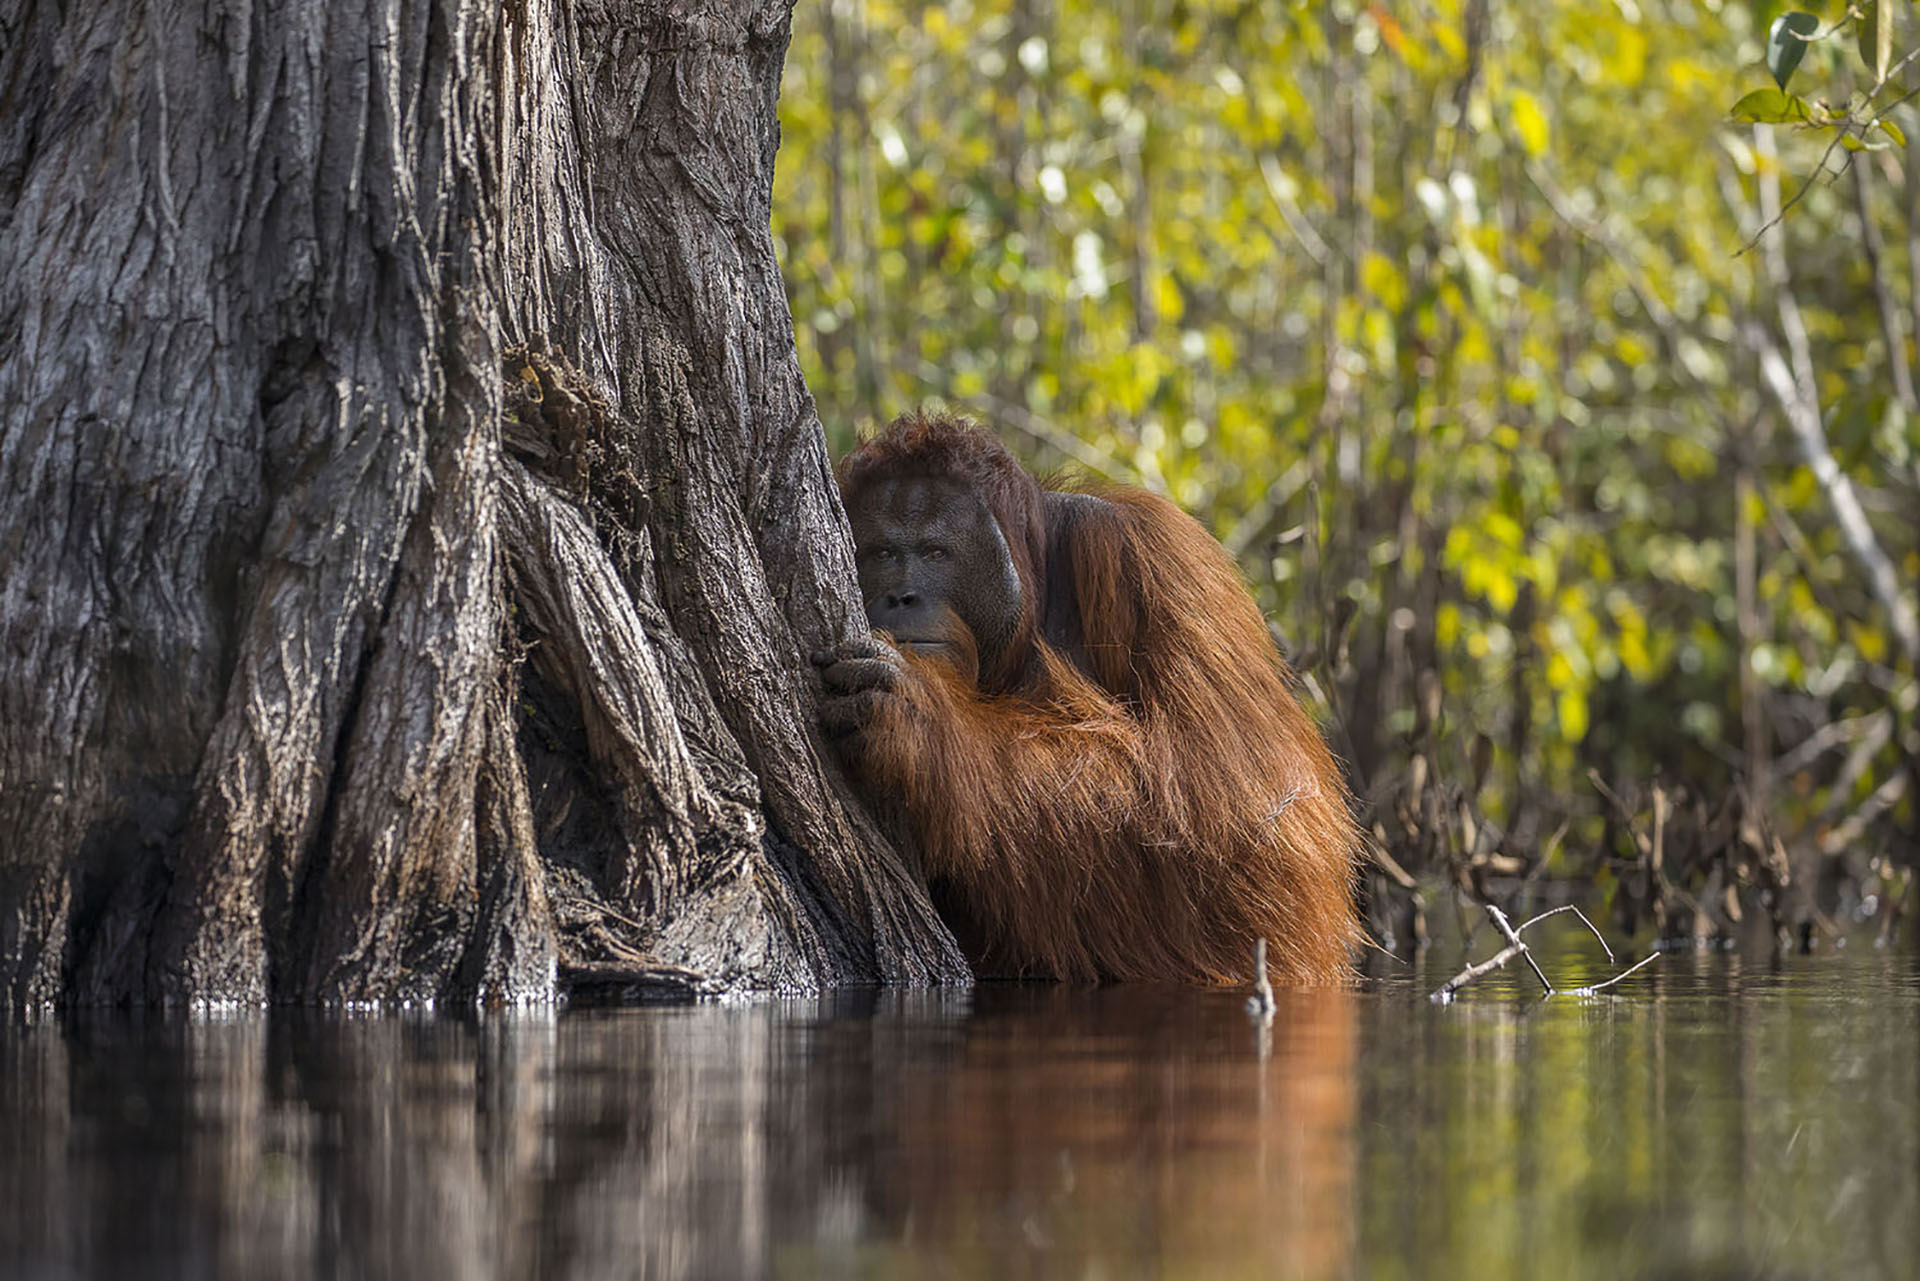 While looking for wild orang-utans in Tanjung putting national park, Indonesia, we witnessed this amazing sight of this huge male crossing a river despite the fact there were crocodiles in the river. Rapid palm oil farming has depleted their habitat and when pushed to the edge these intelligent creatures have learnt to adapt to the changing landscape, This is proof considering orang-utans hate water and never venture into a river. I got into the 5 feet deep river to get this perspective.